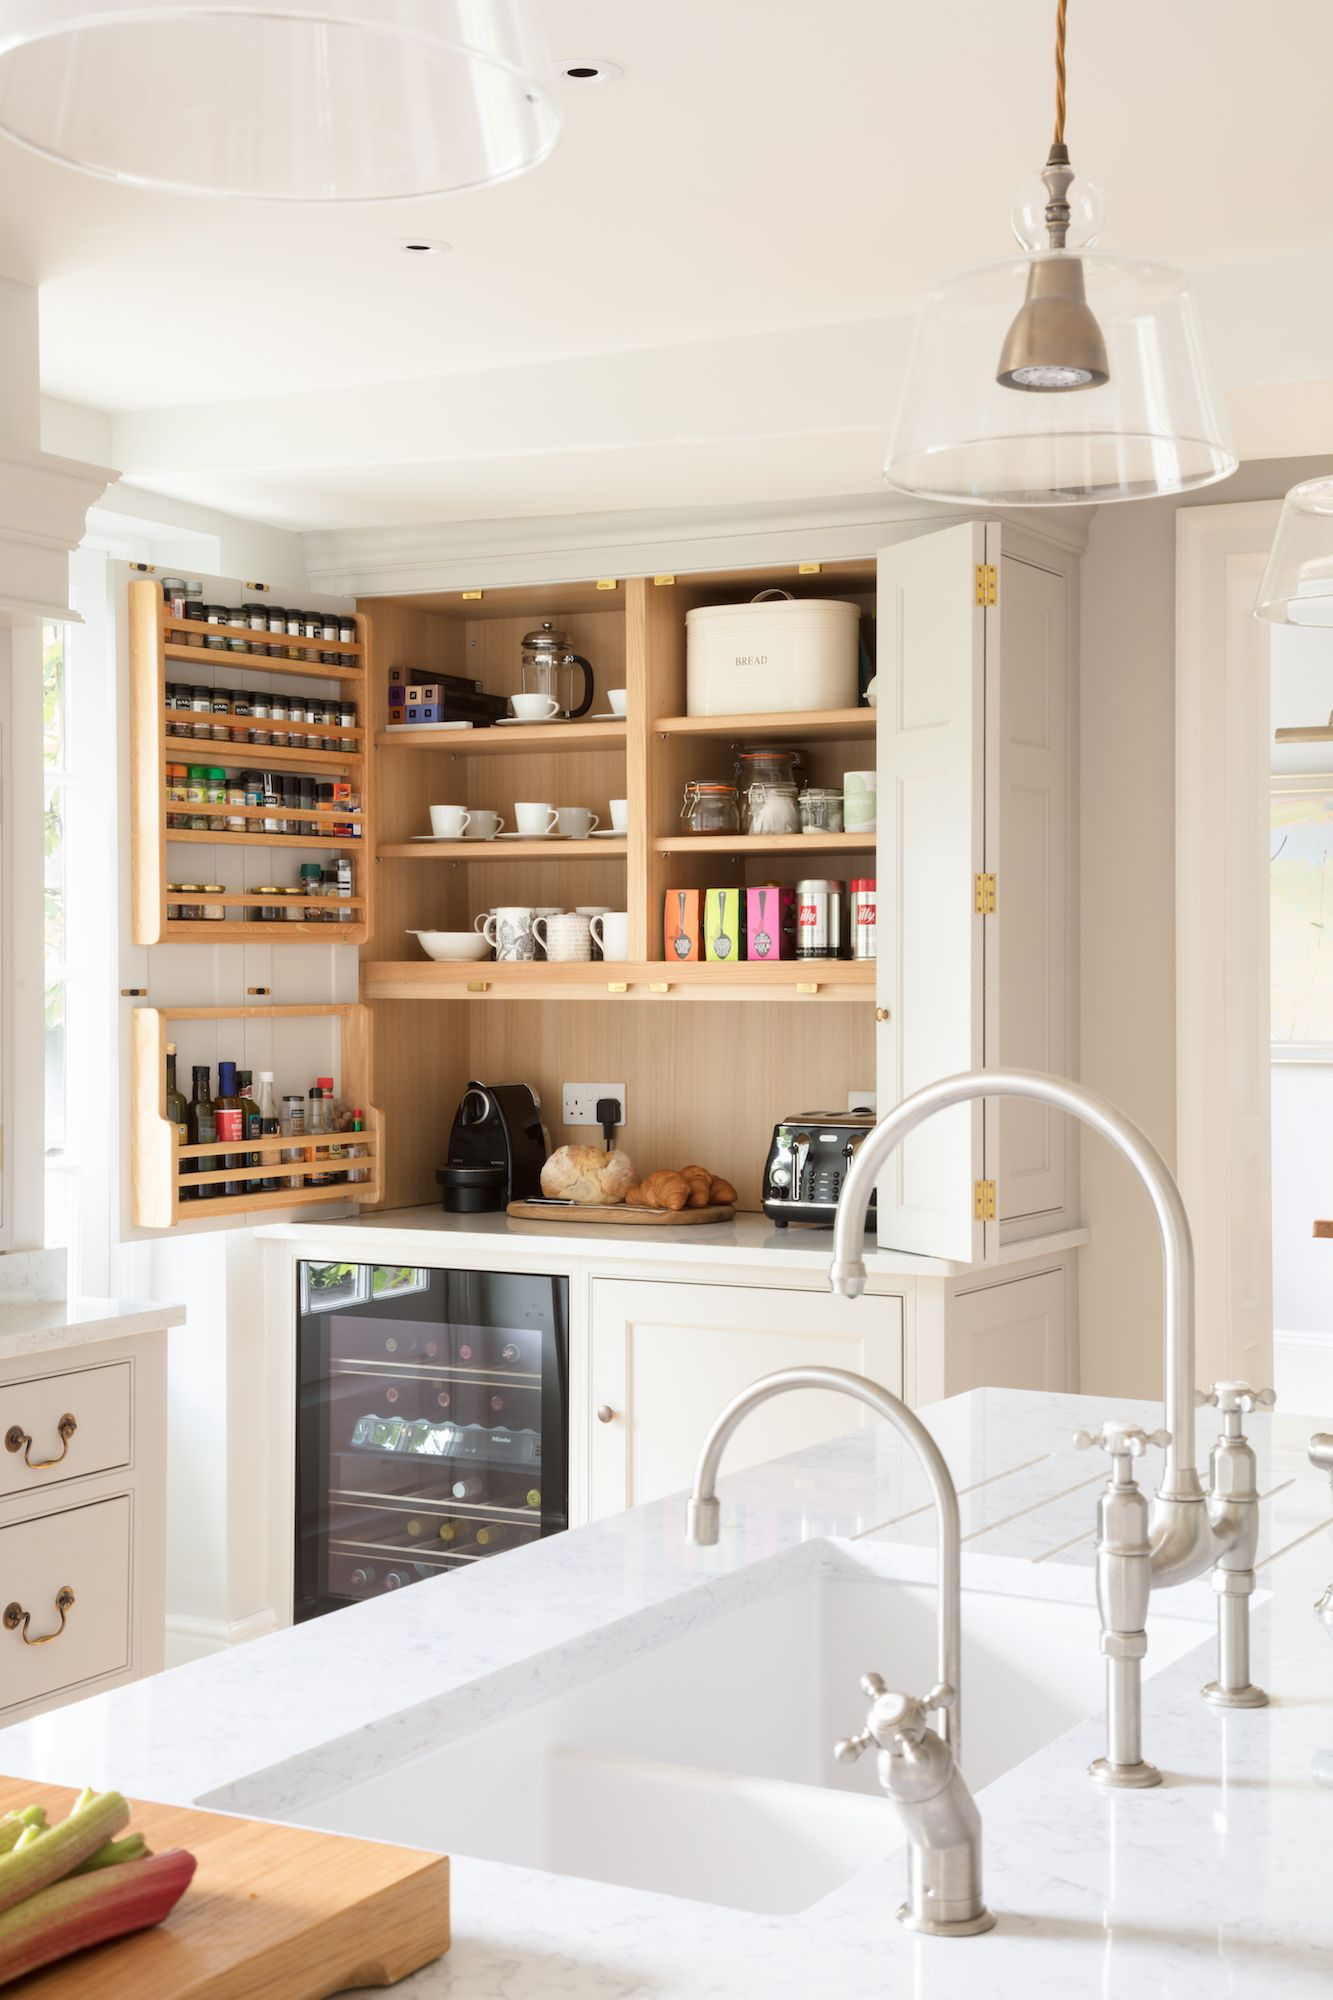 20 Spice Rack Ideas For Both Roomy Or Cramped Kitchen And Other Rooms Tags:  Ikea Spice Rack Spice Rack Ideas Wall Mounted Spice Rack Wooden Spice Rack  Wall ...